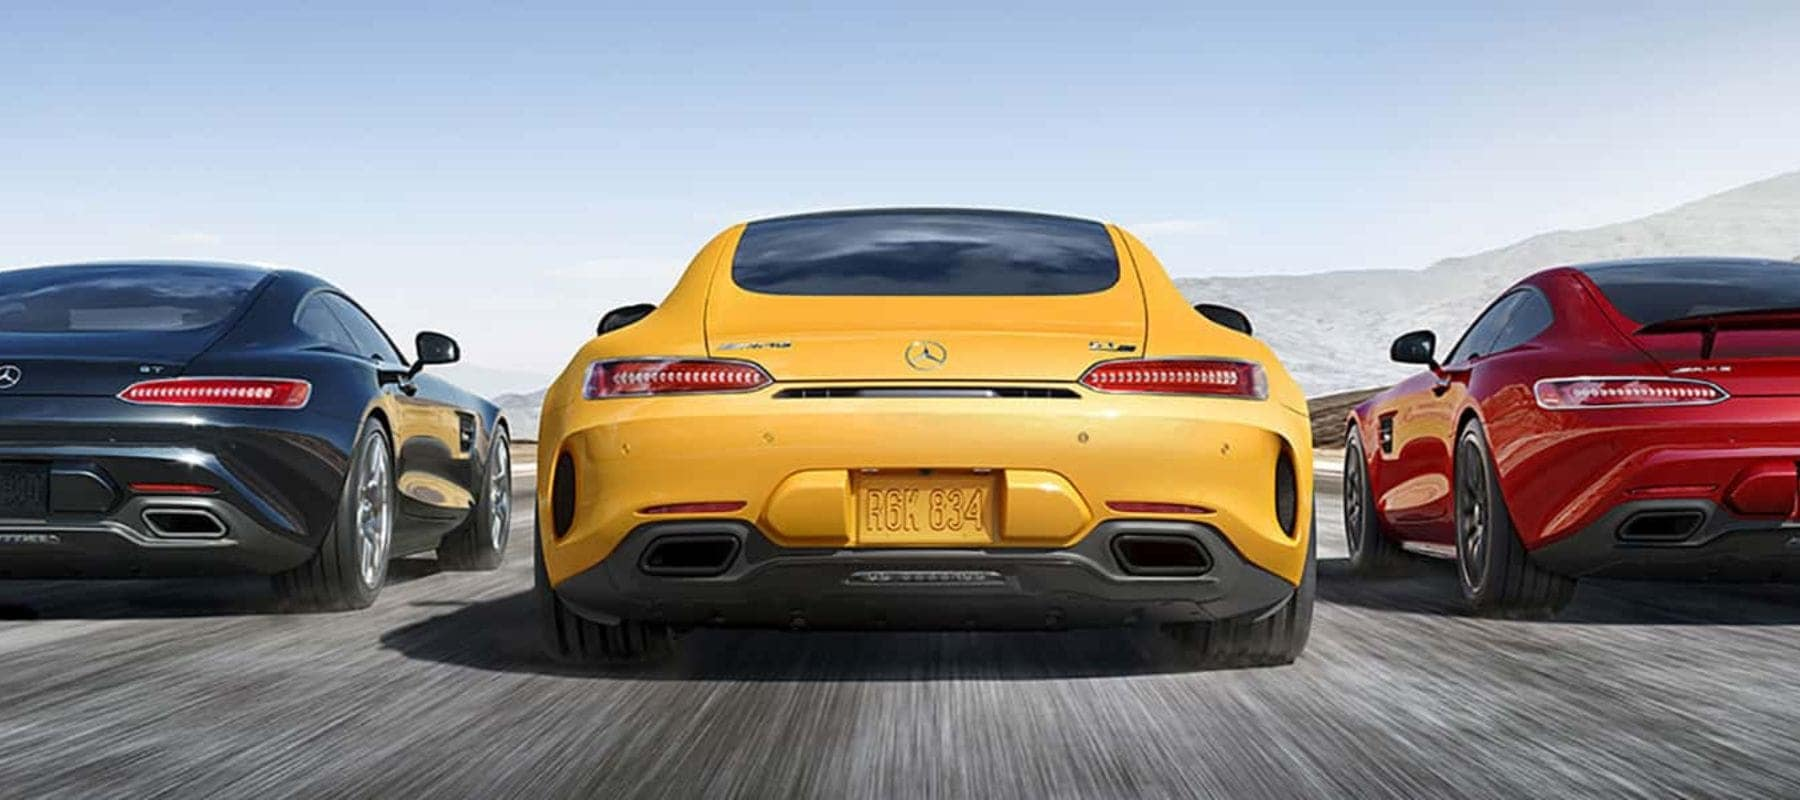 2018-AMG-GT-COUPE-GALLERY-004-SET-M-FE-DR